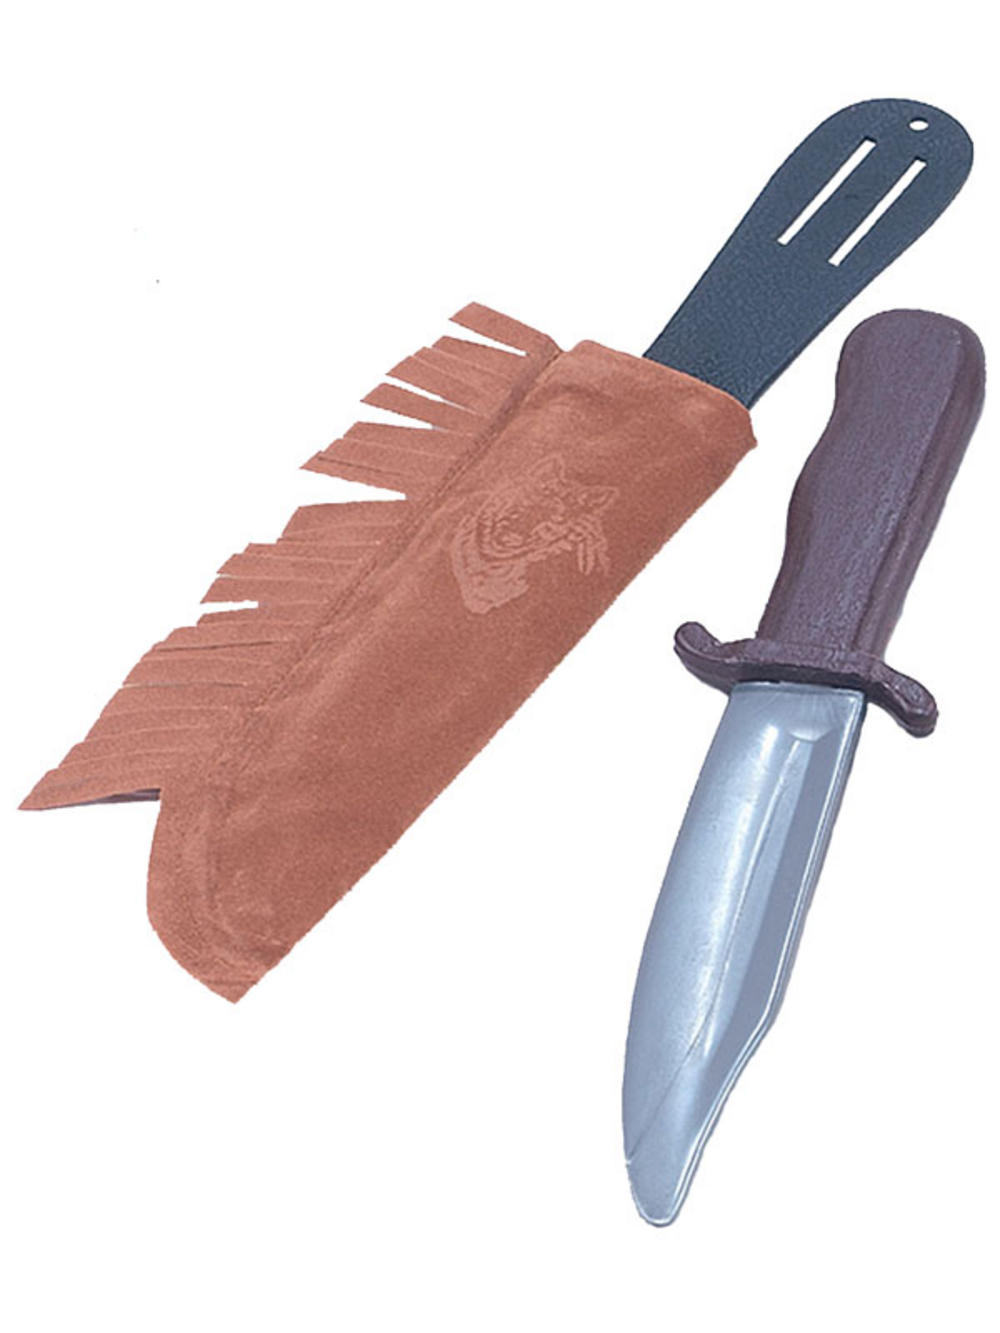 Toys For Knives : Plastic dagger knife in sheath indian pirate tarzan fancy